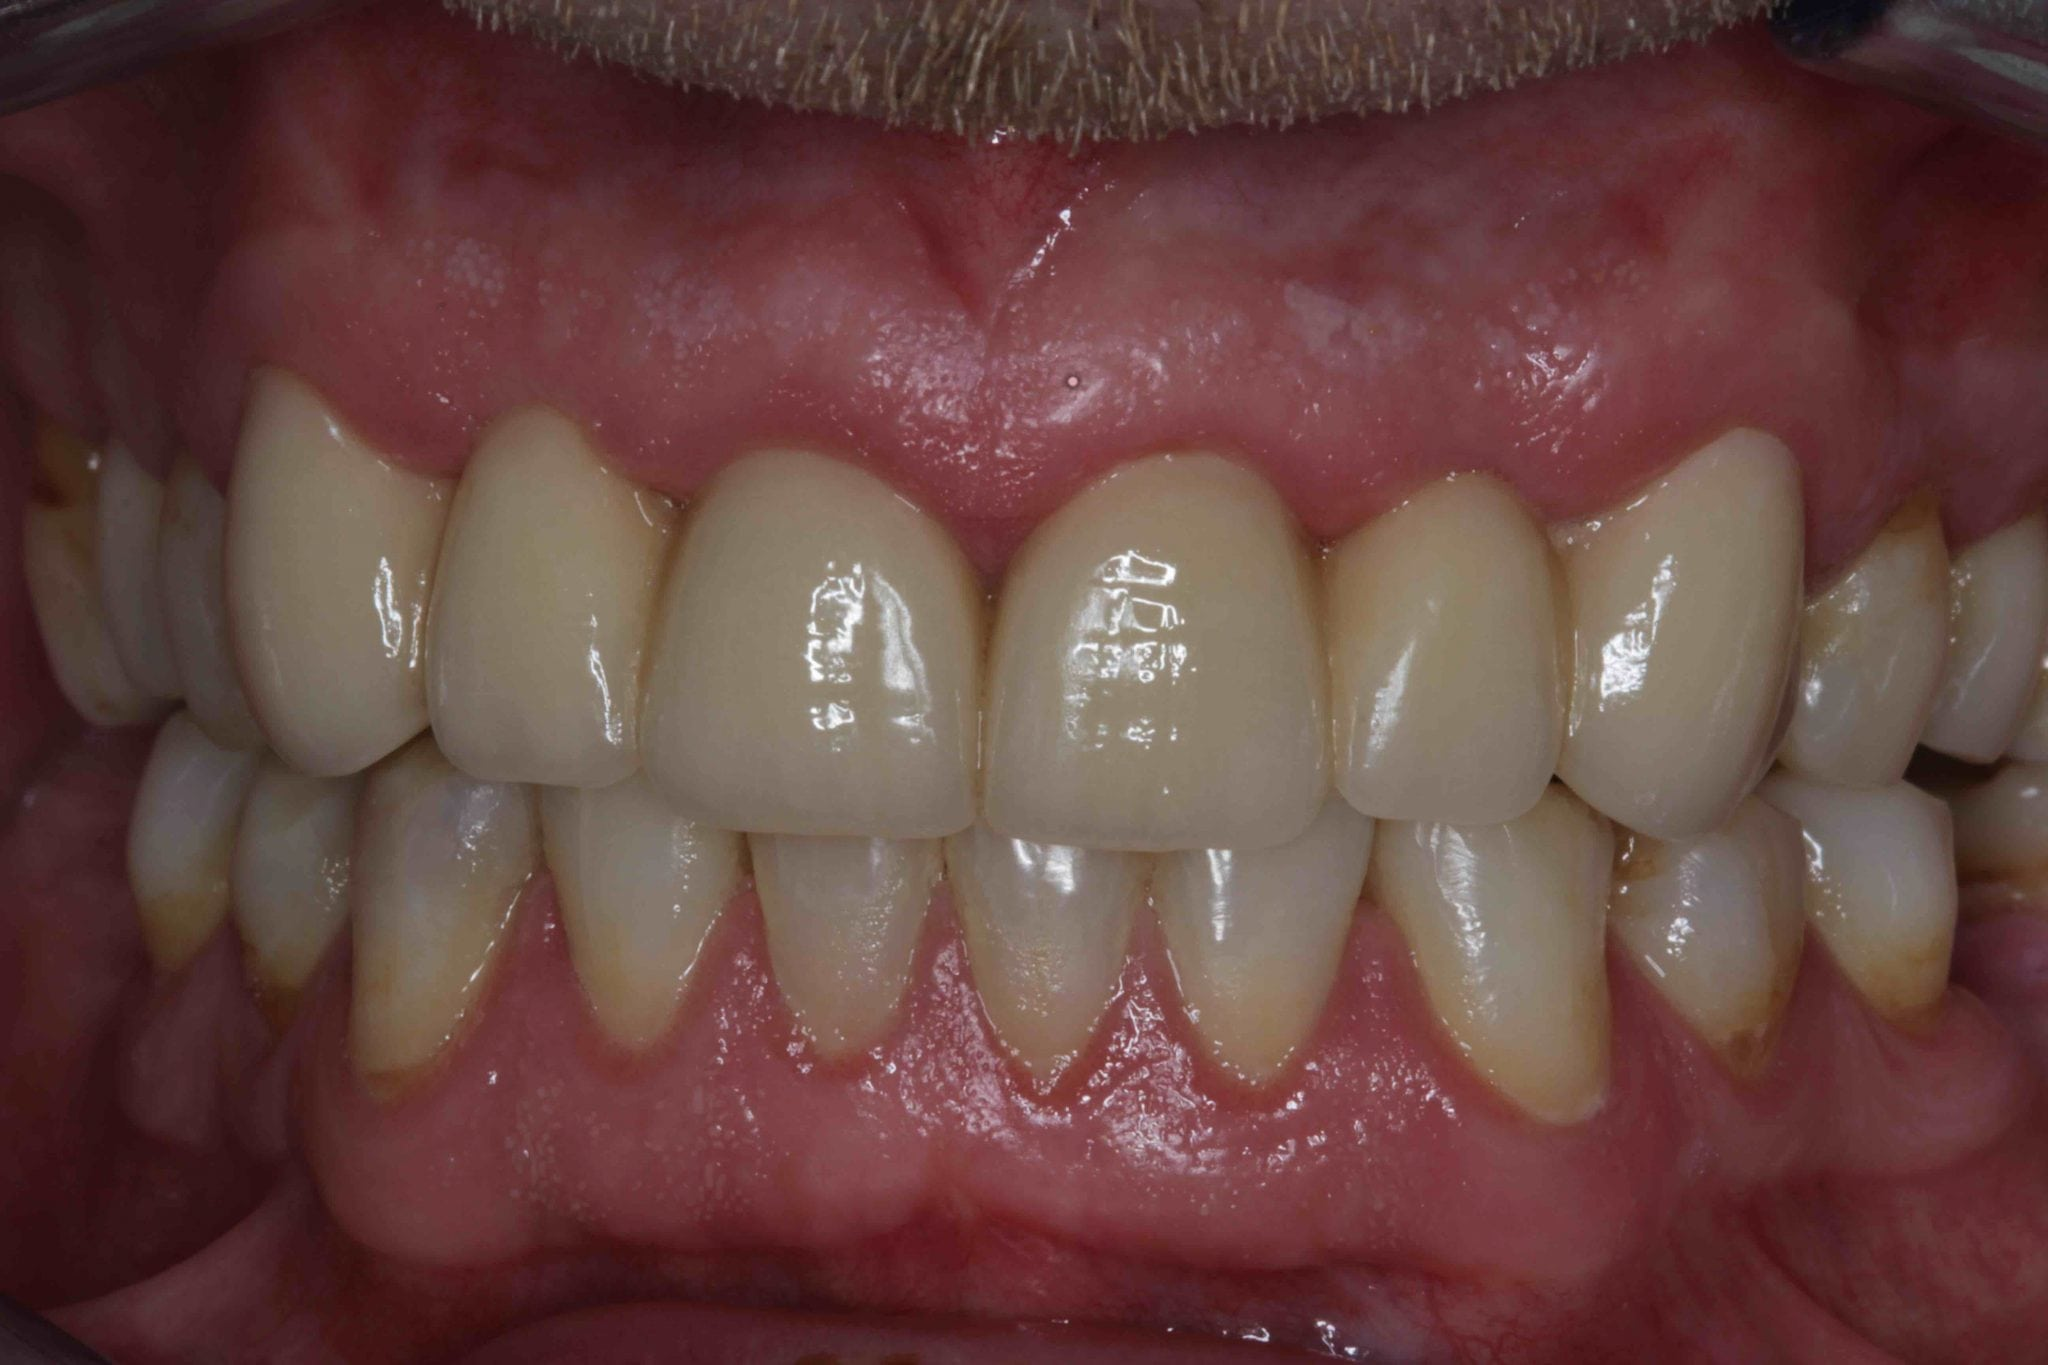 Dental Bridges Before and after pictures - Replacing extracted Teeth After